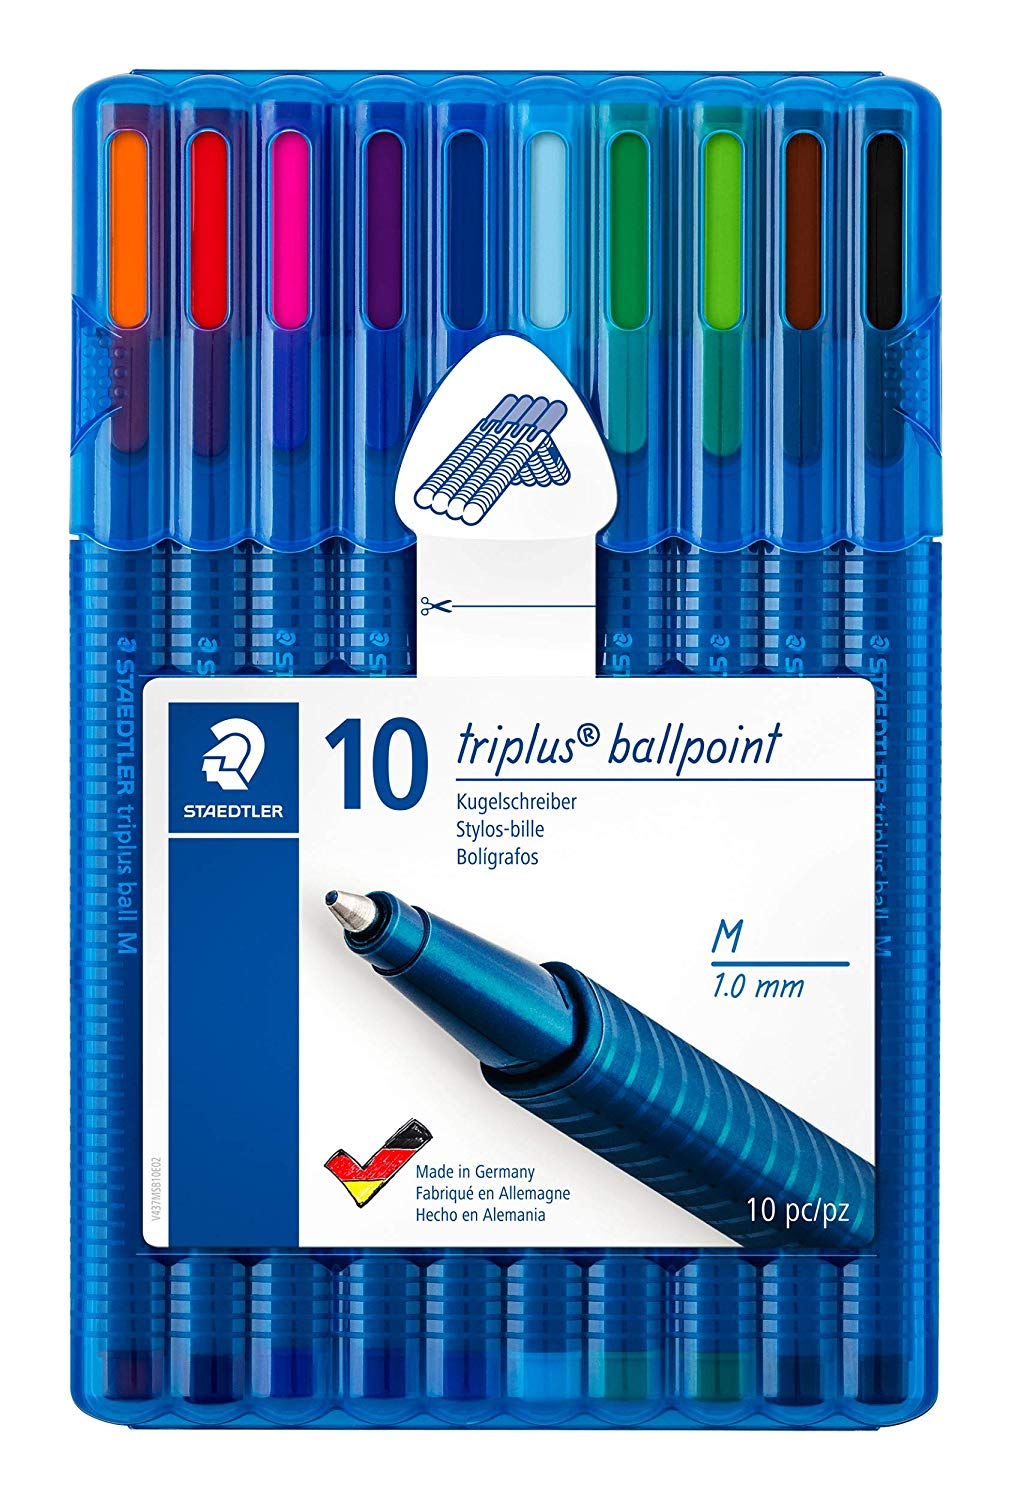 STAEDTLER 437 MSB10 Triplus Ballpoint Pen – Multi-Colour (Pack of 10)